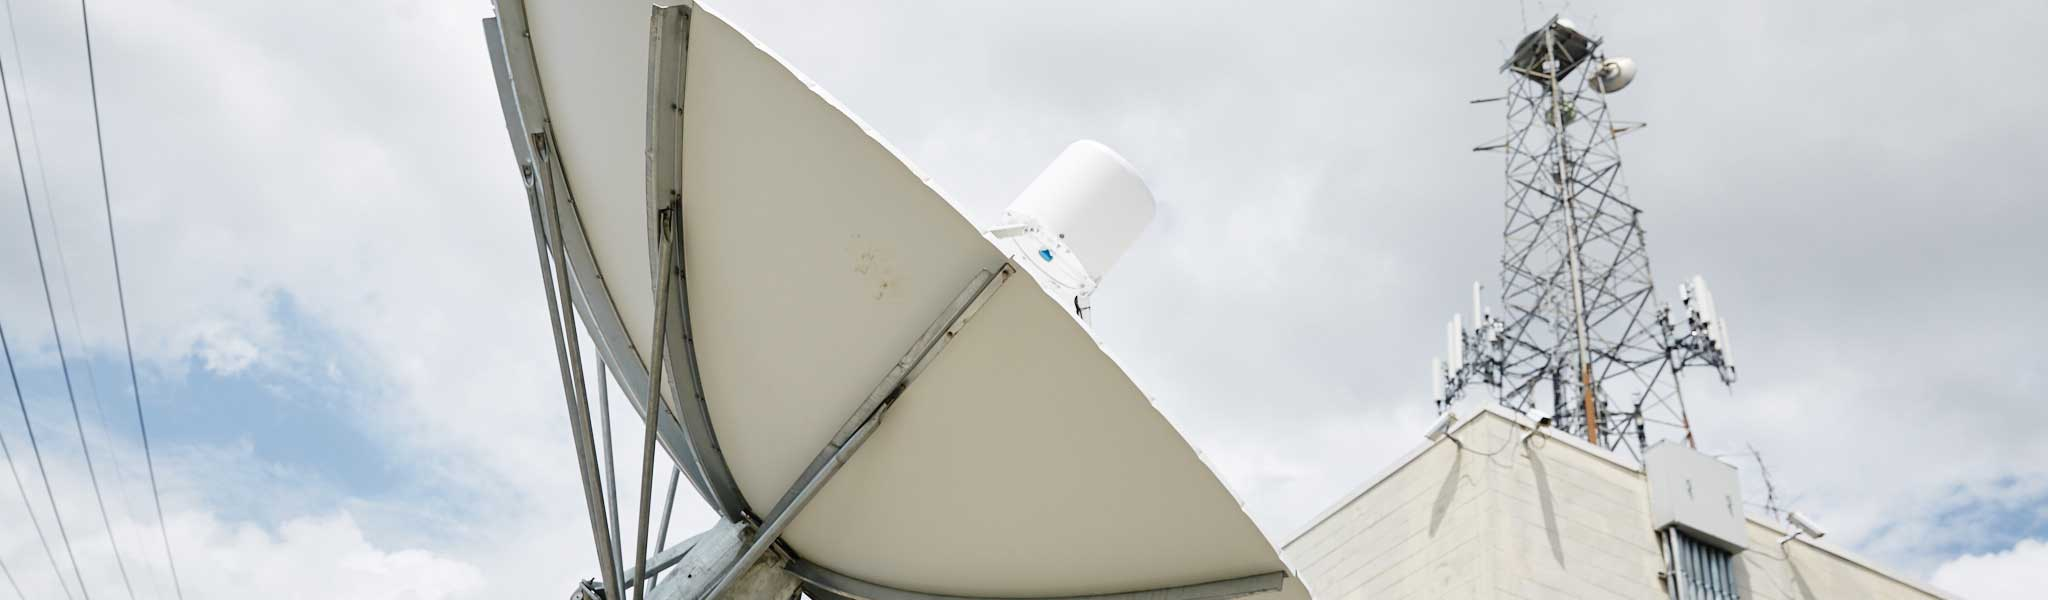 Commercial Satellite Dish